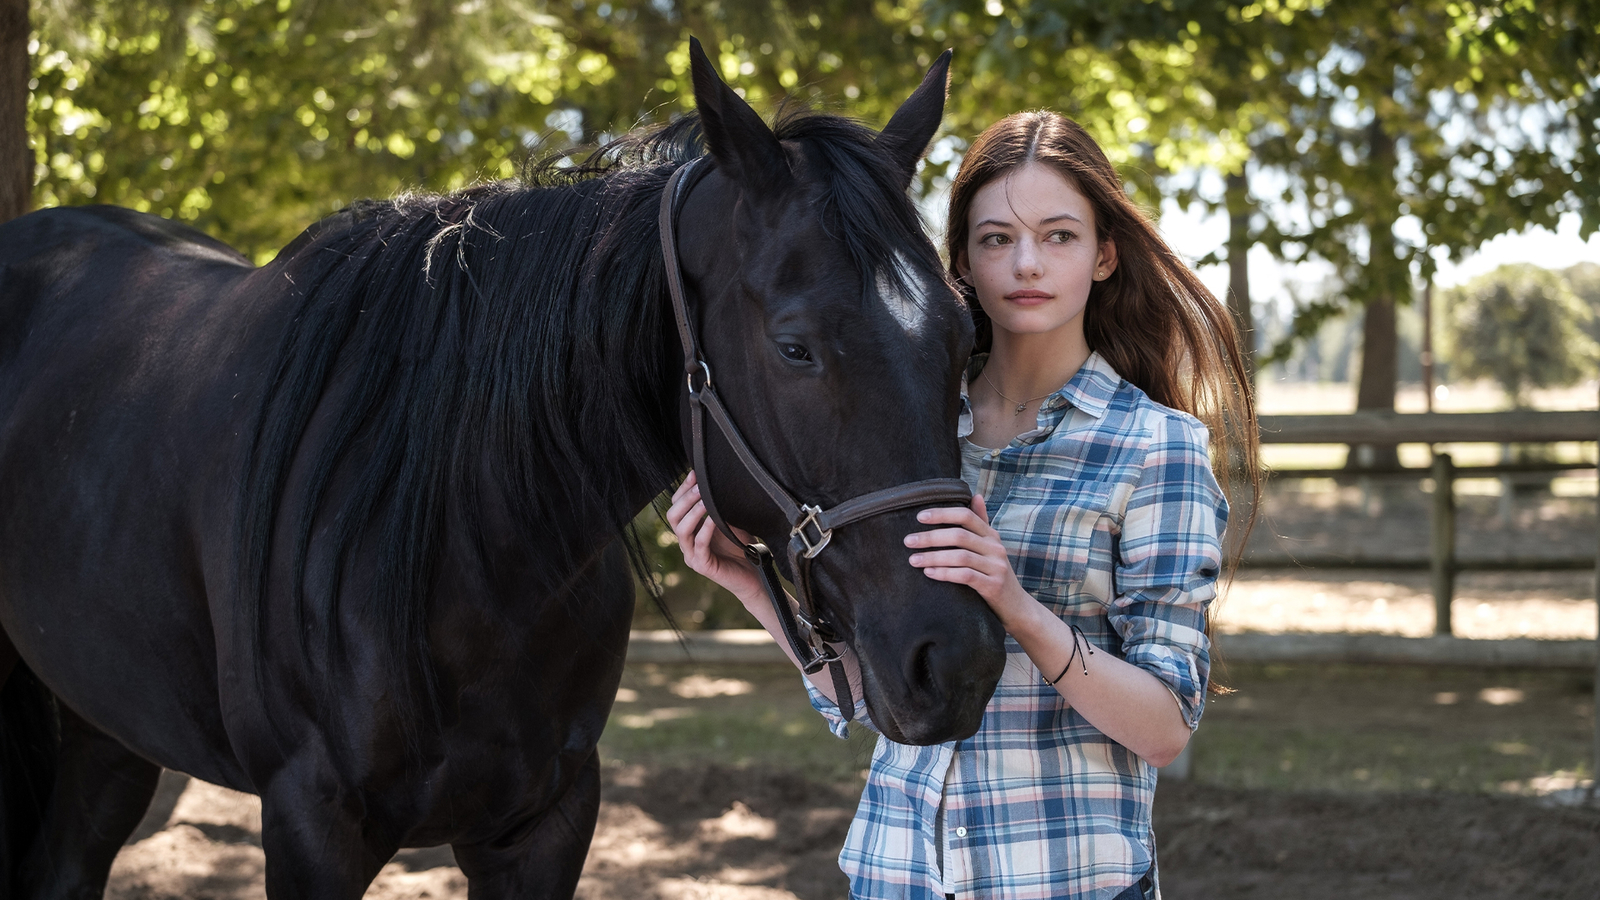 'Black Beauty' actress, director reveal how the Disney+ film changed their lives